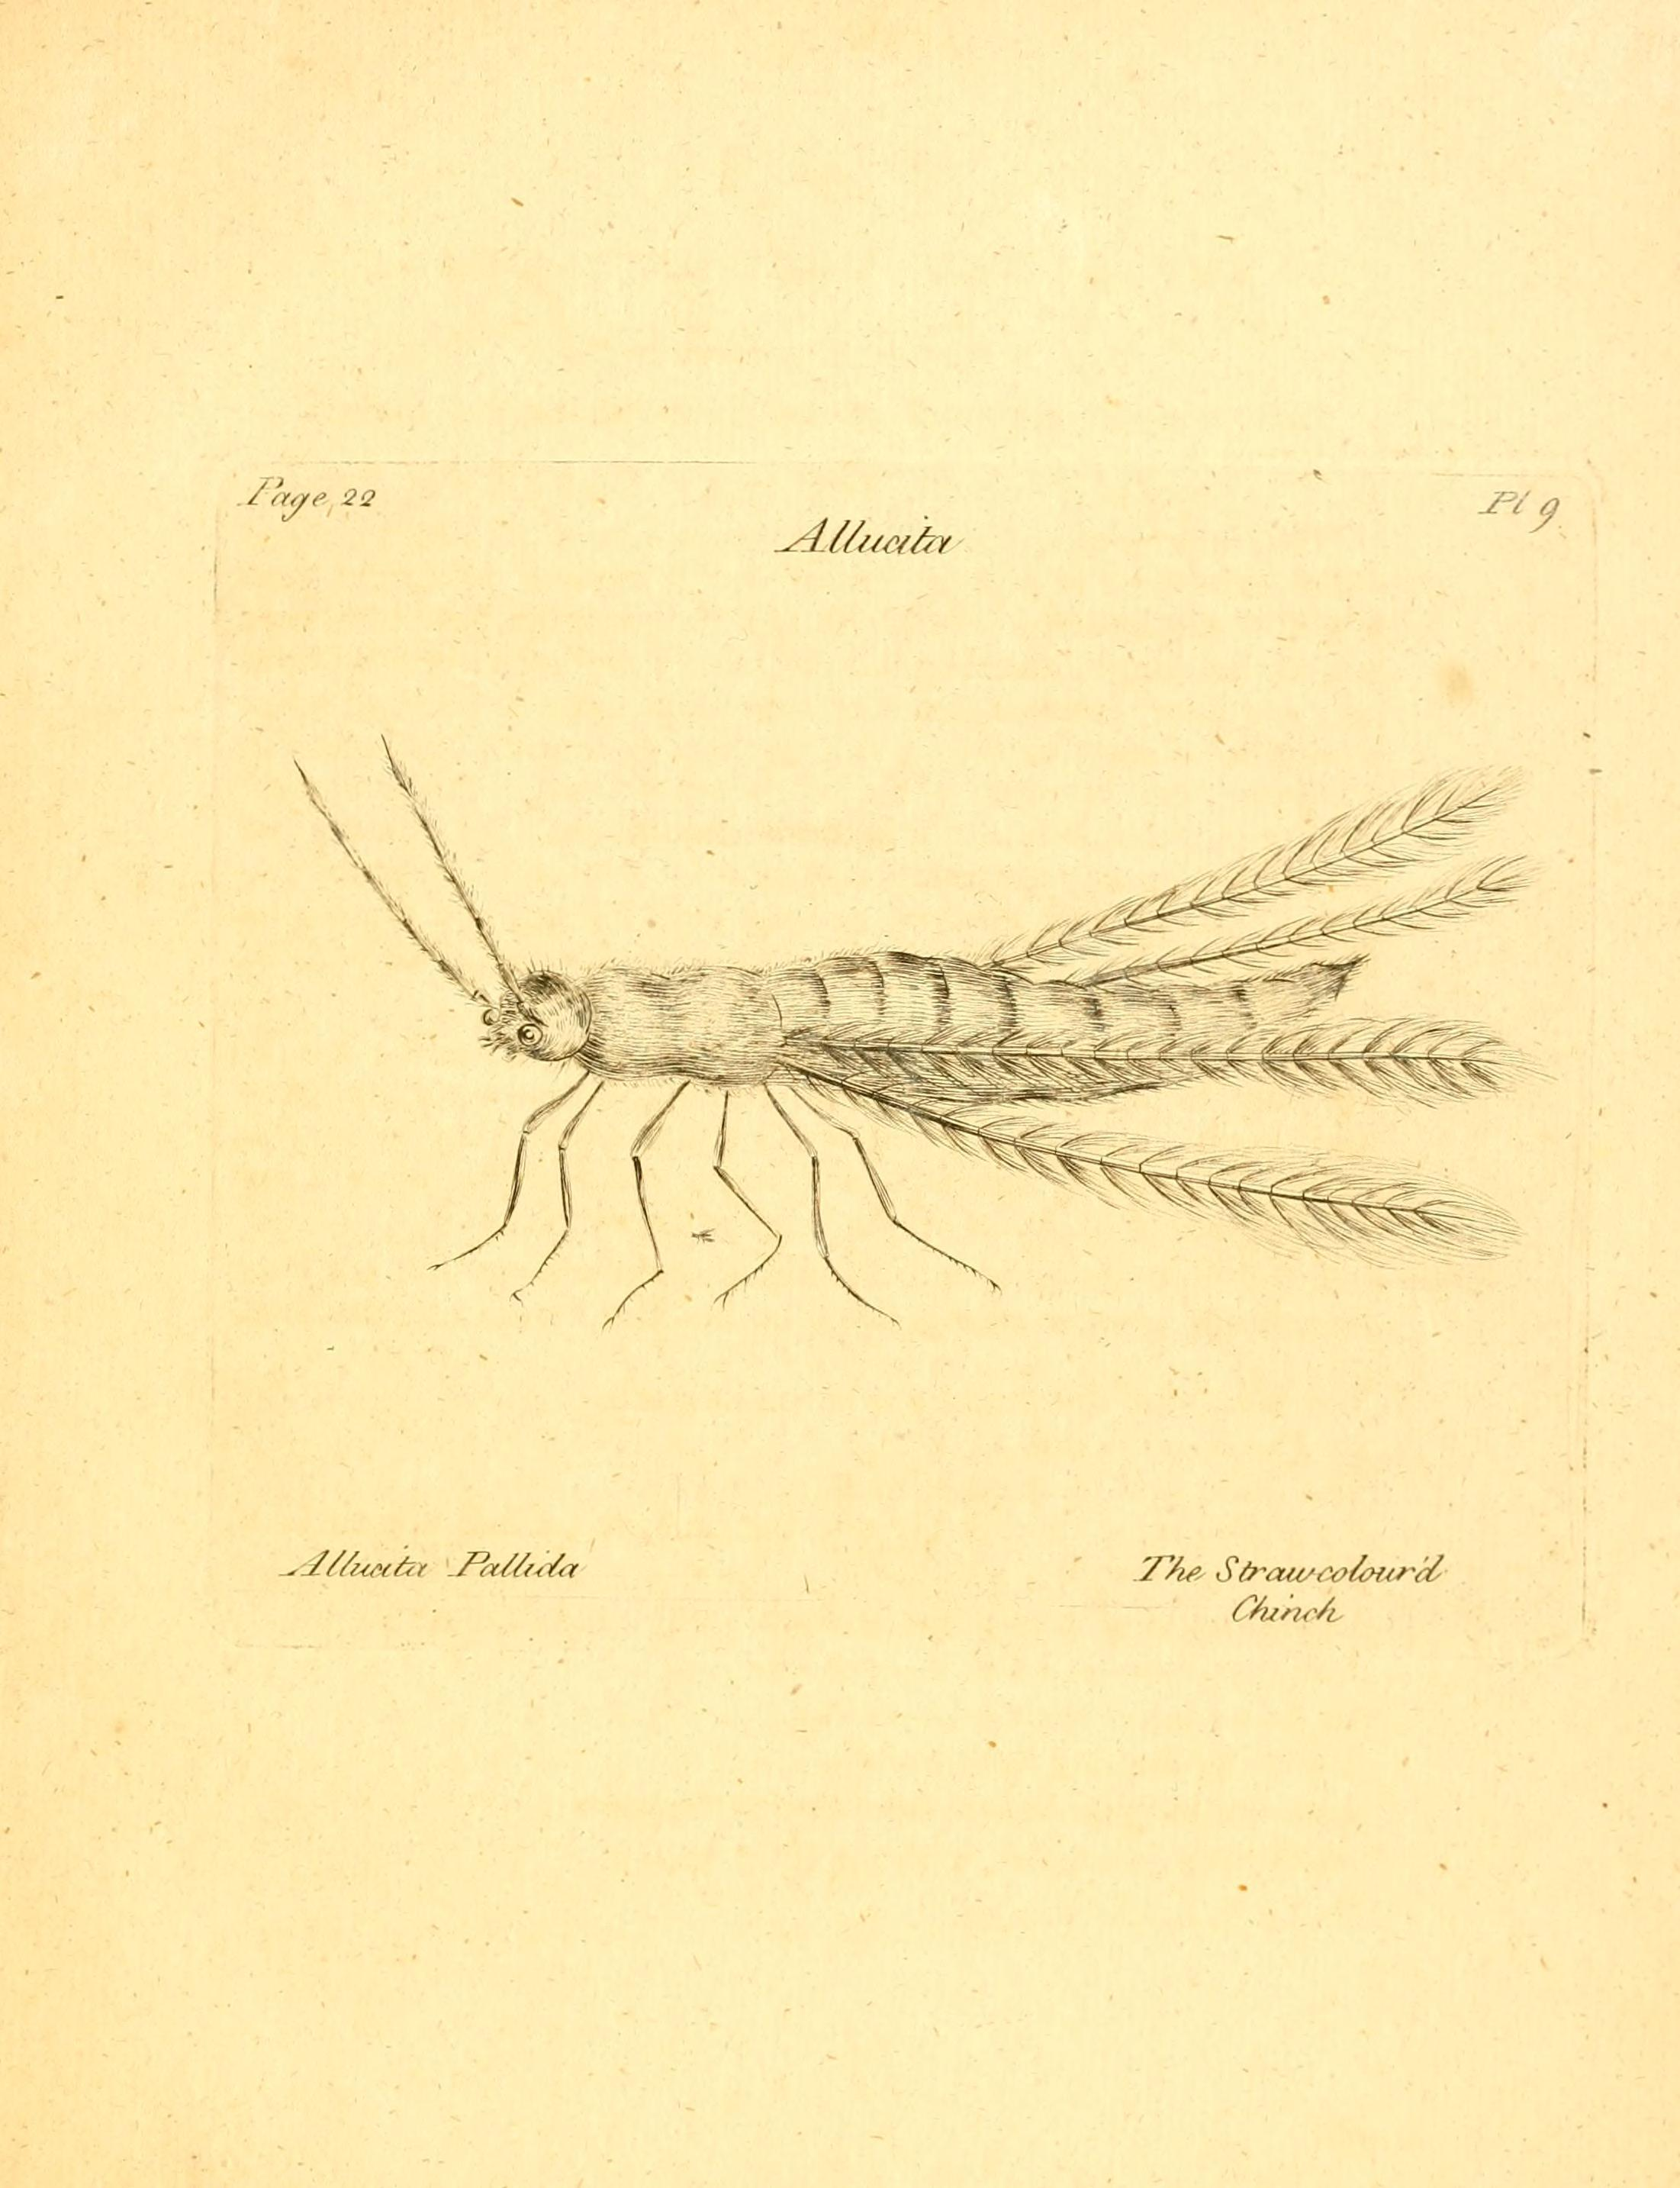 Image of Thrips